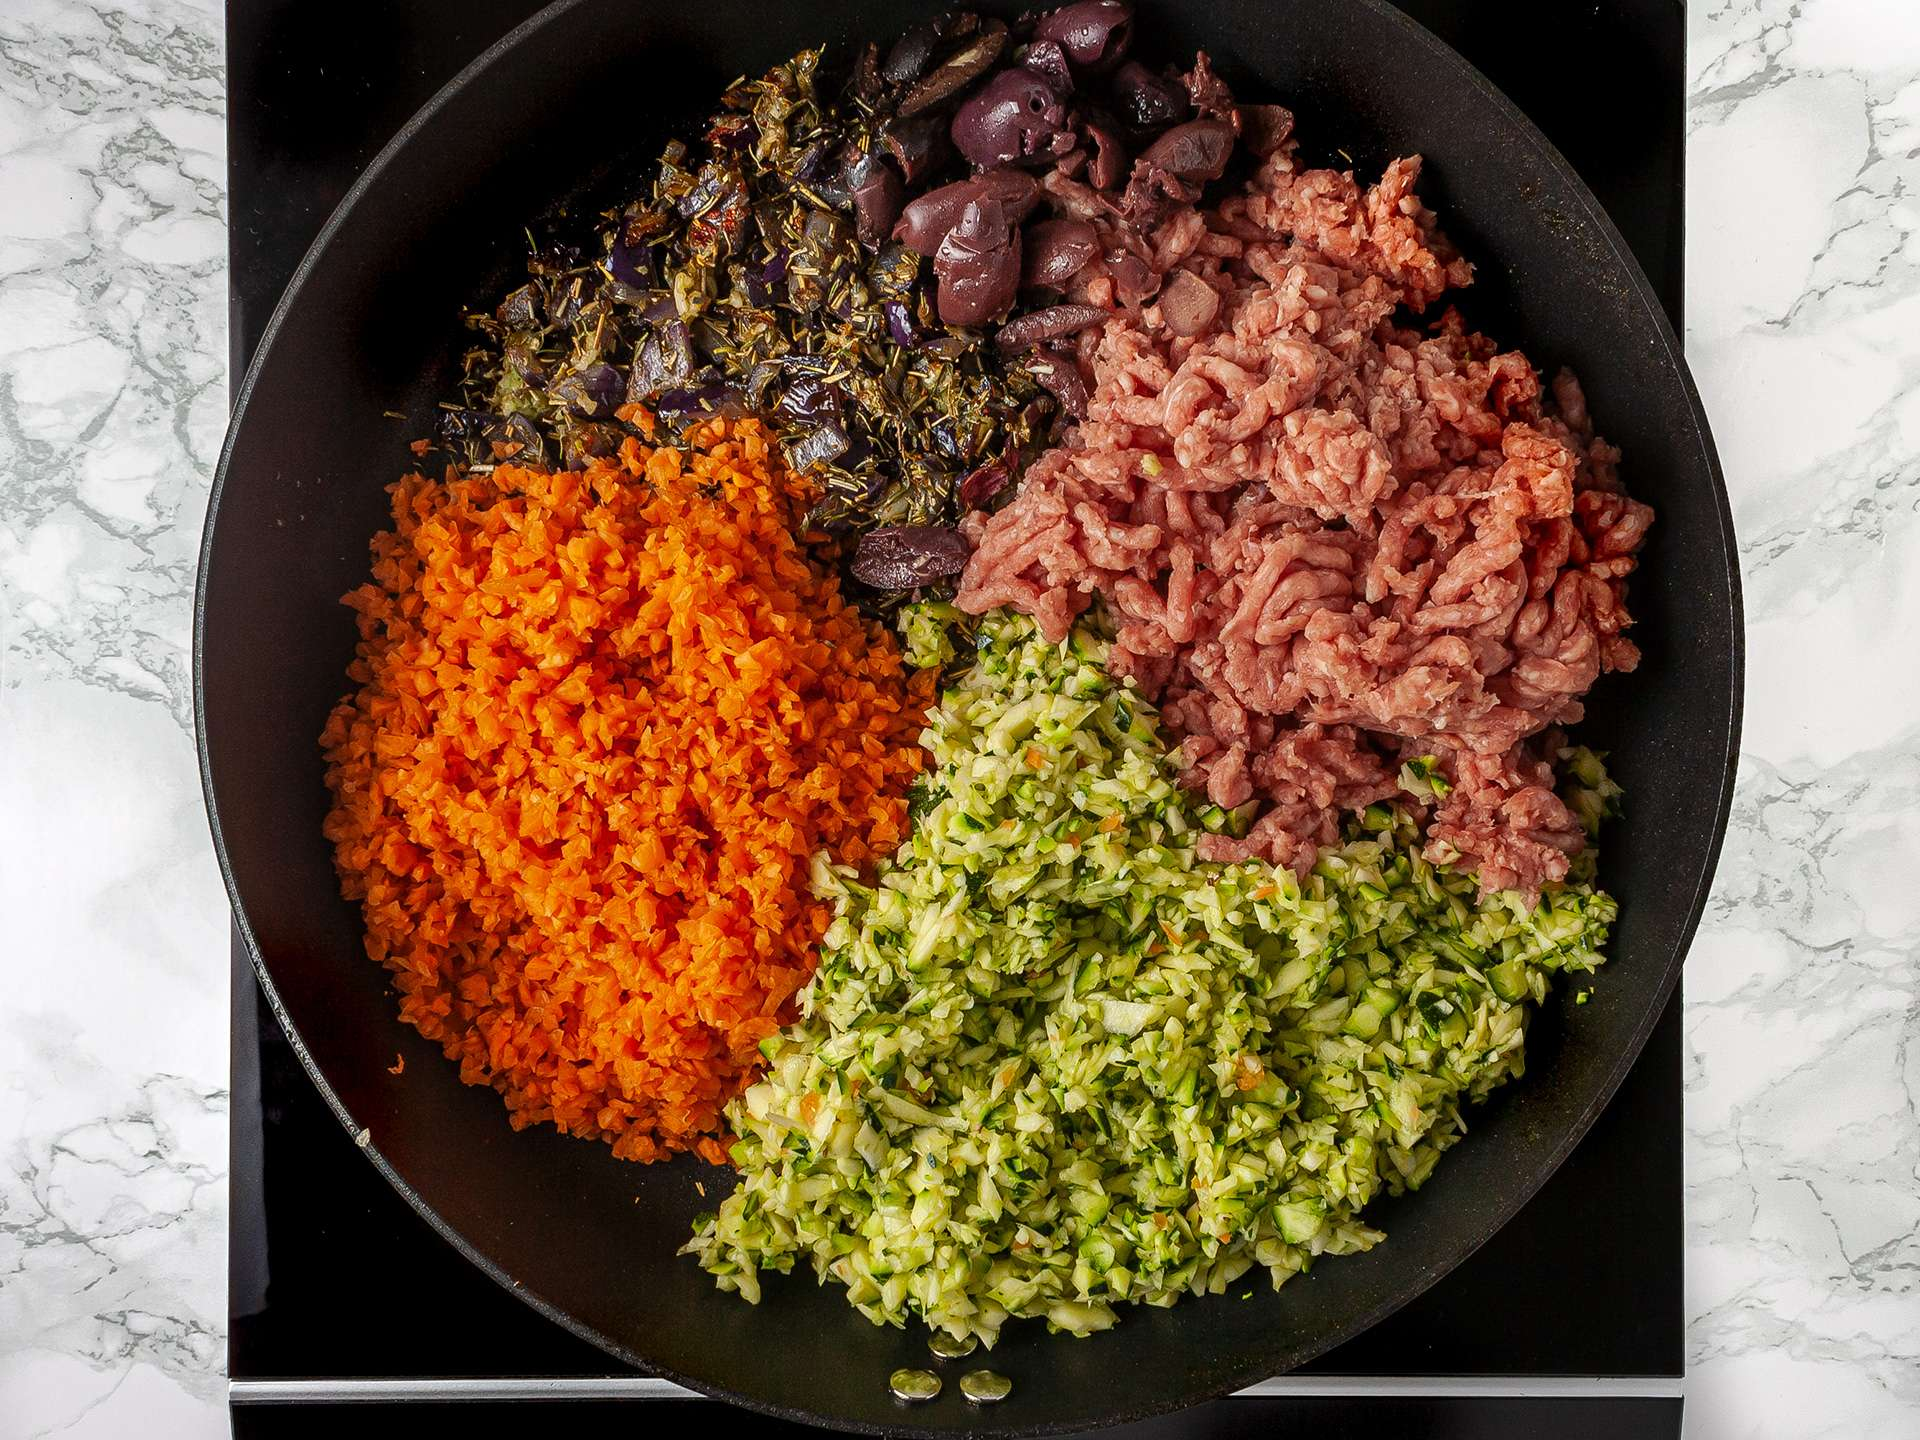 Lamb mince and grated vegetables in a skillet